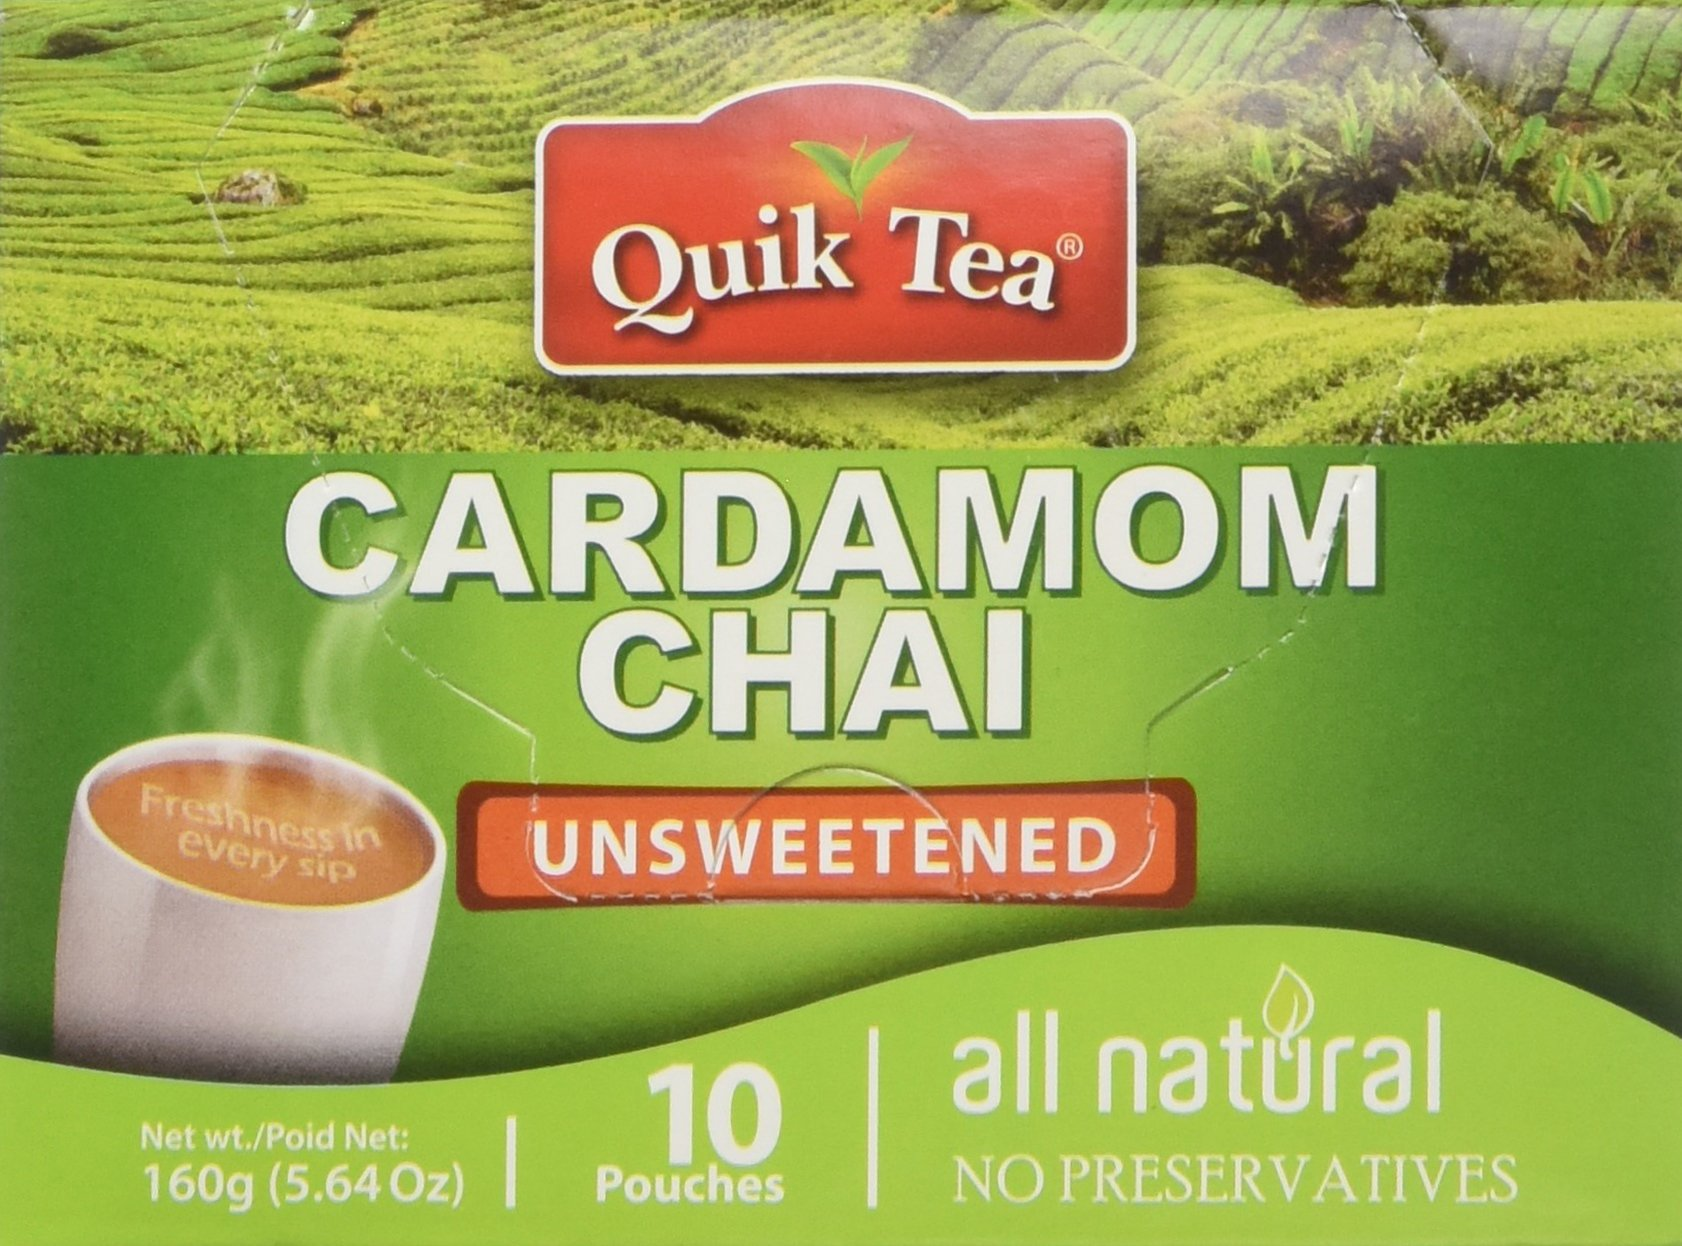 QuikTea Unsweetened Cardamom Chai, 40 count (4 boxes of 10 each) by QuikTea